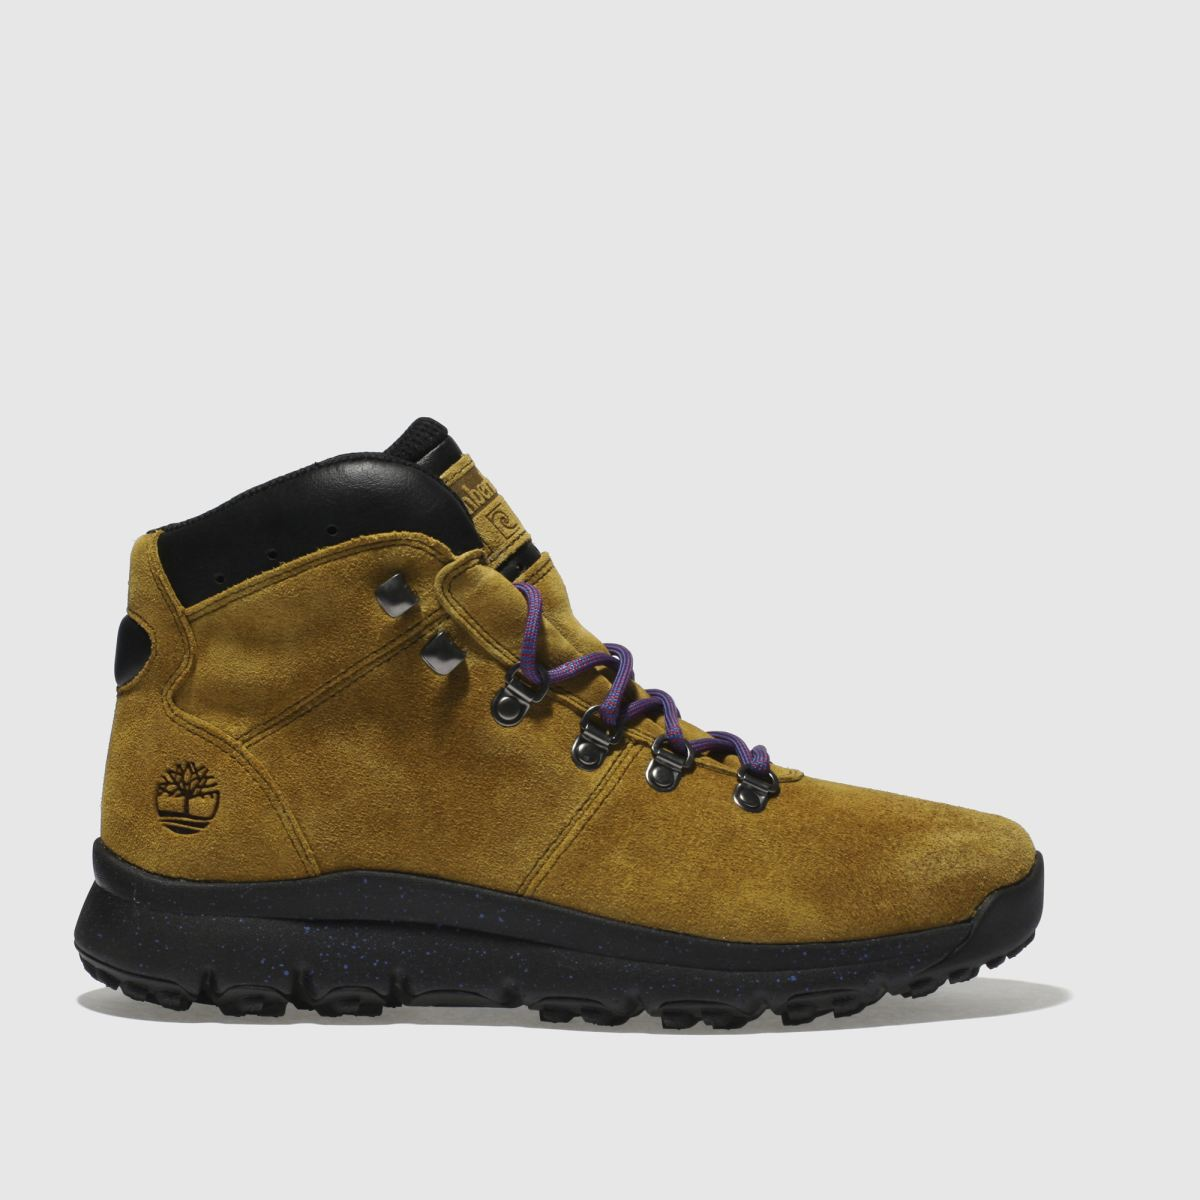 Timberland Natural World Hiker Mid Boots